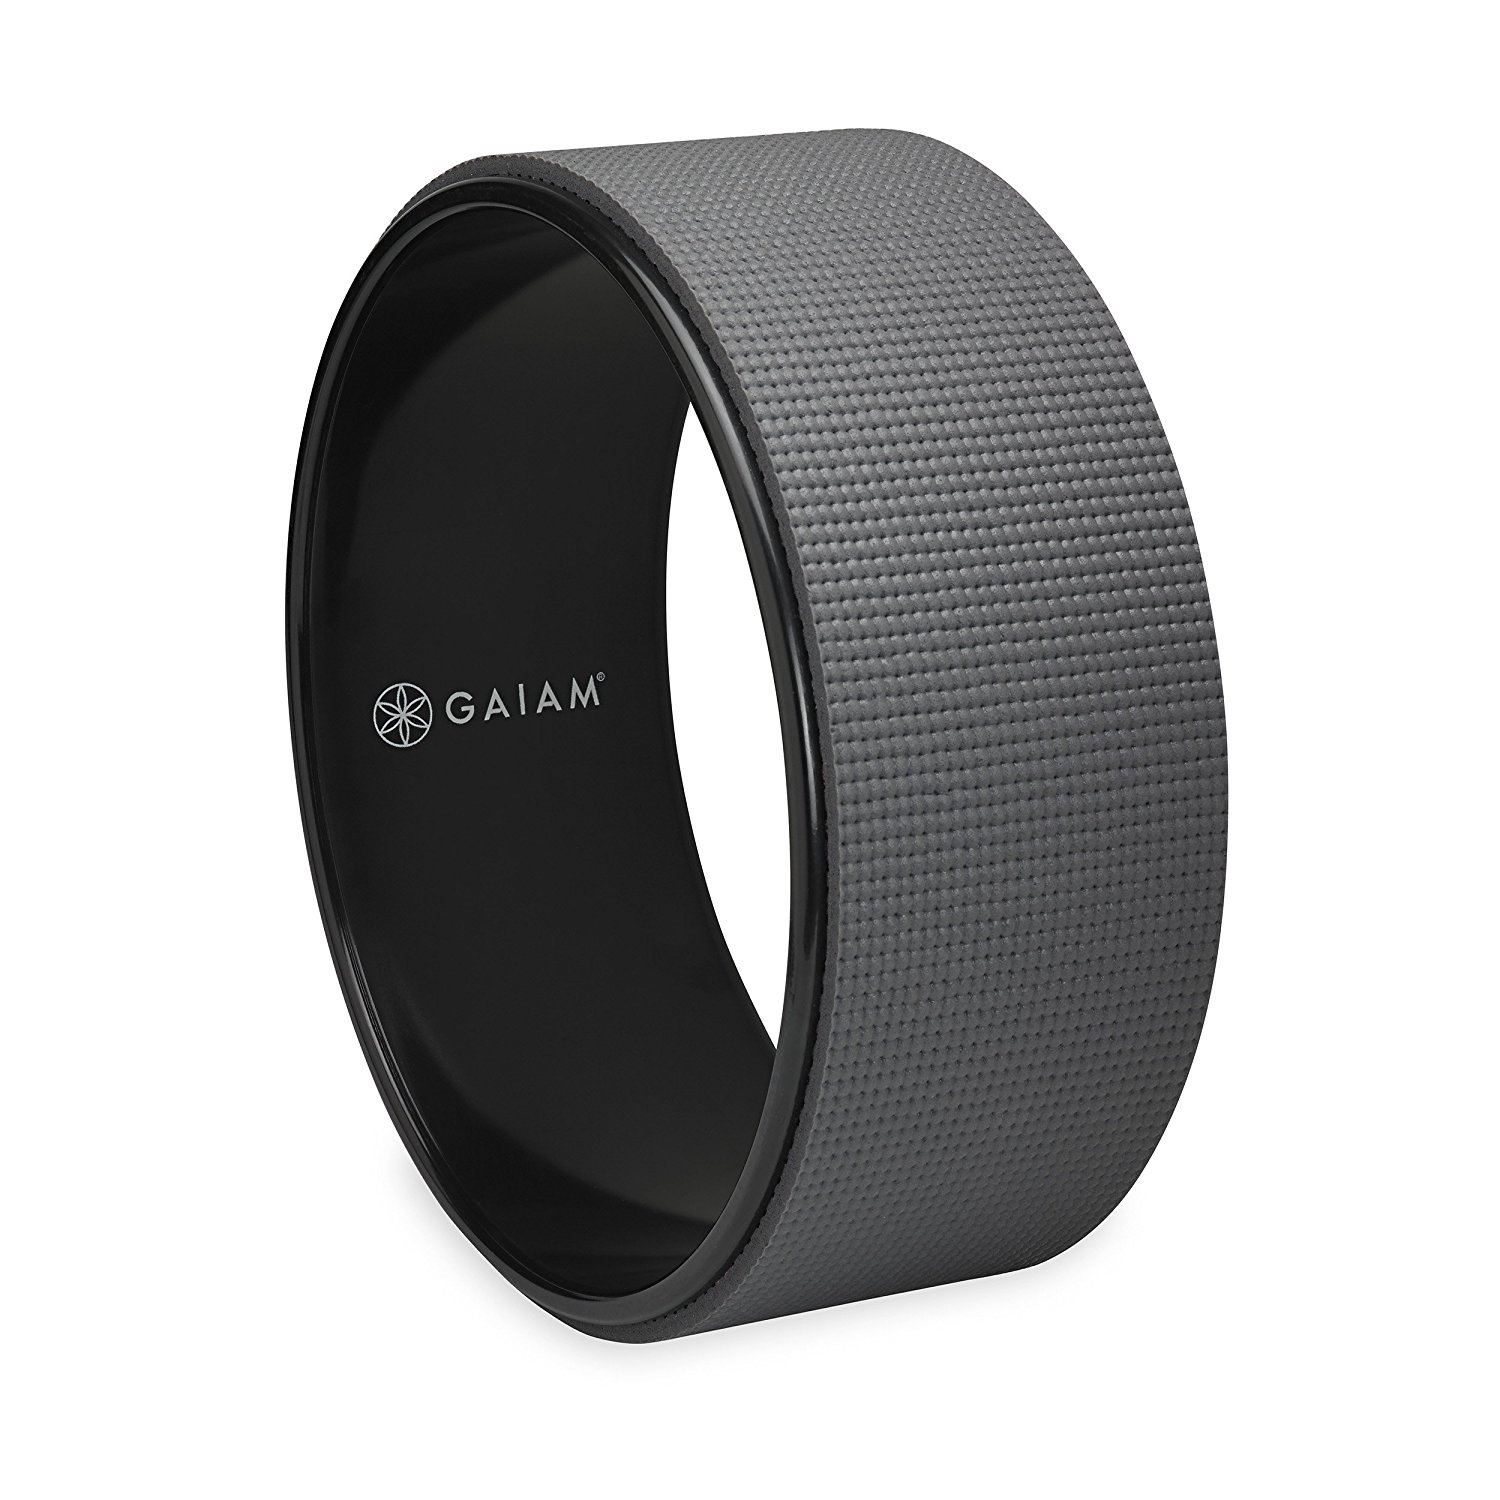 Gaiam 12-Inch Yoga Wheel with PVC Core & 5mm Yoga Mat Padding – Available in Black/Gray or Cork